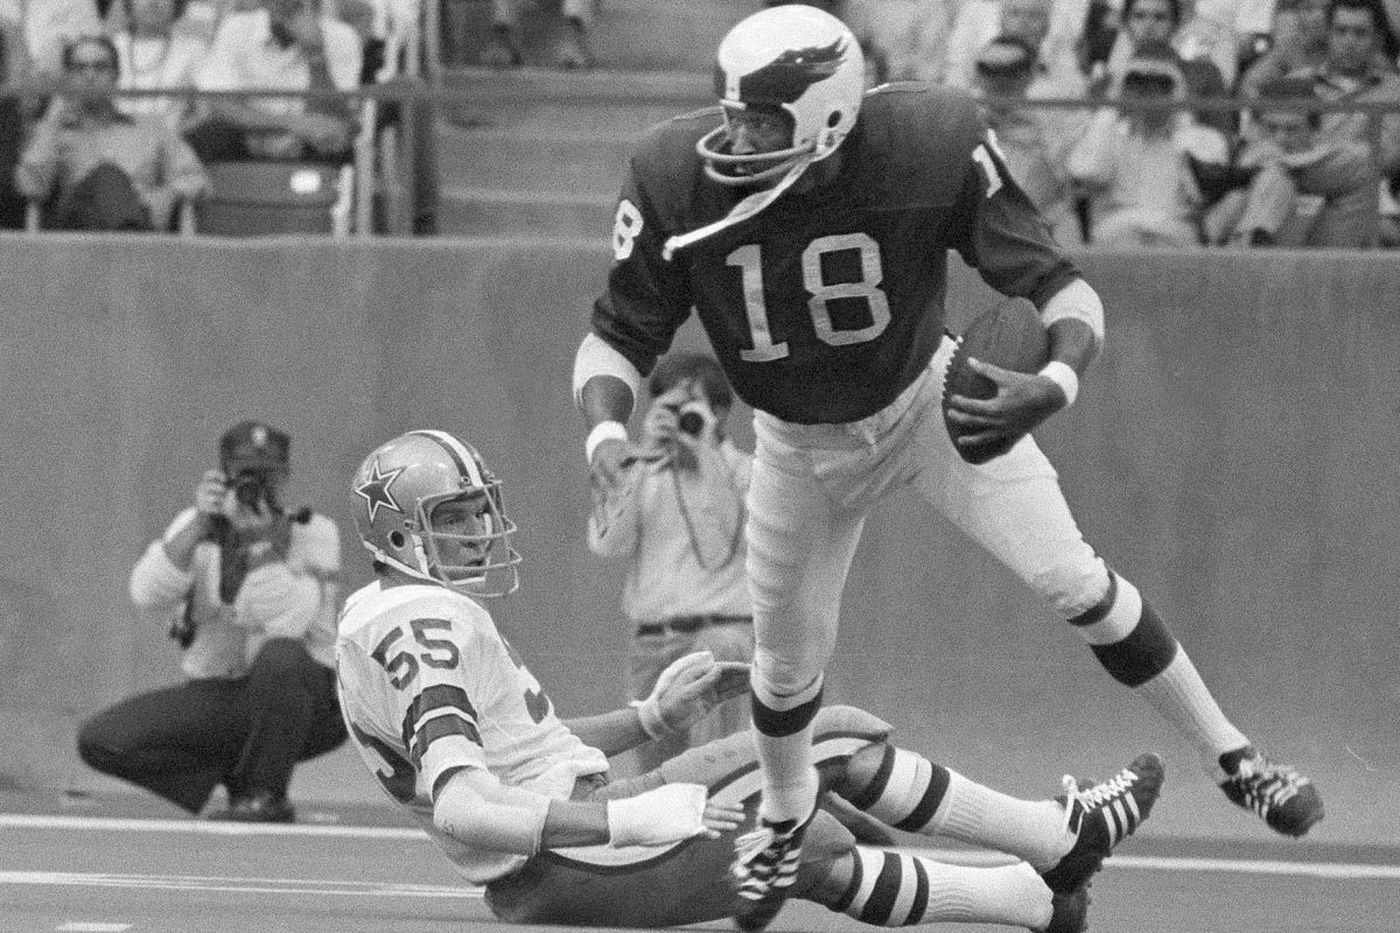 Eagles great Ben Hawkins dies; known for playing with chin strap unbuckled